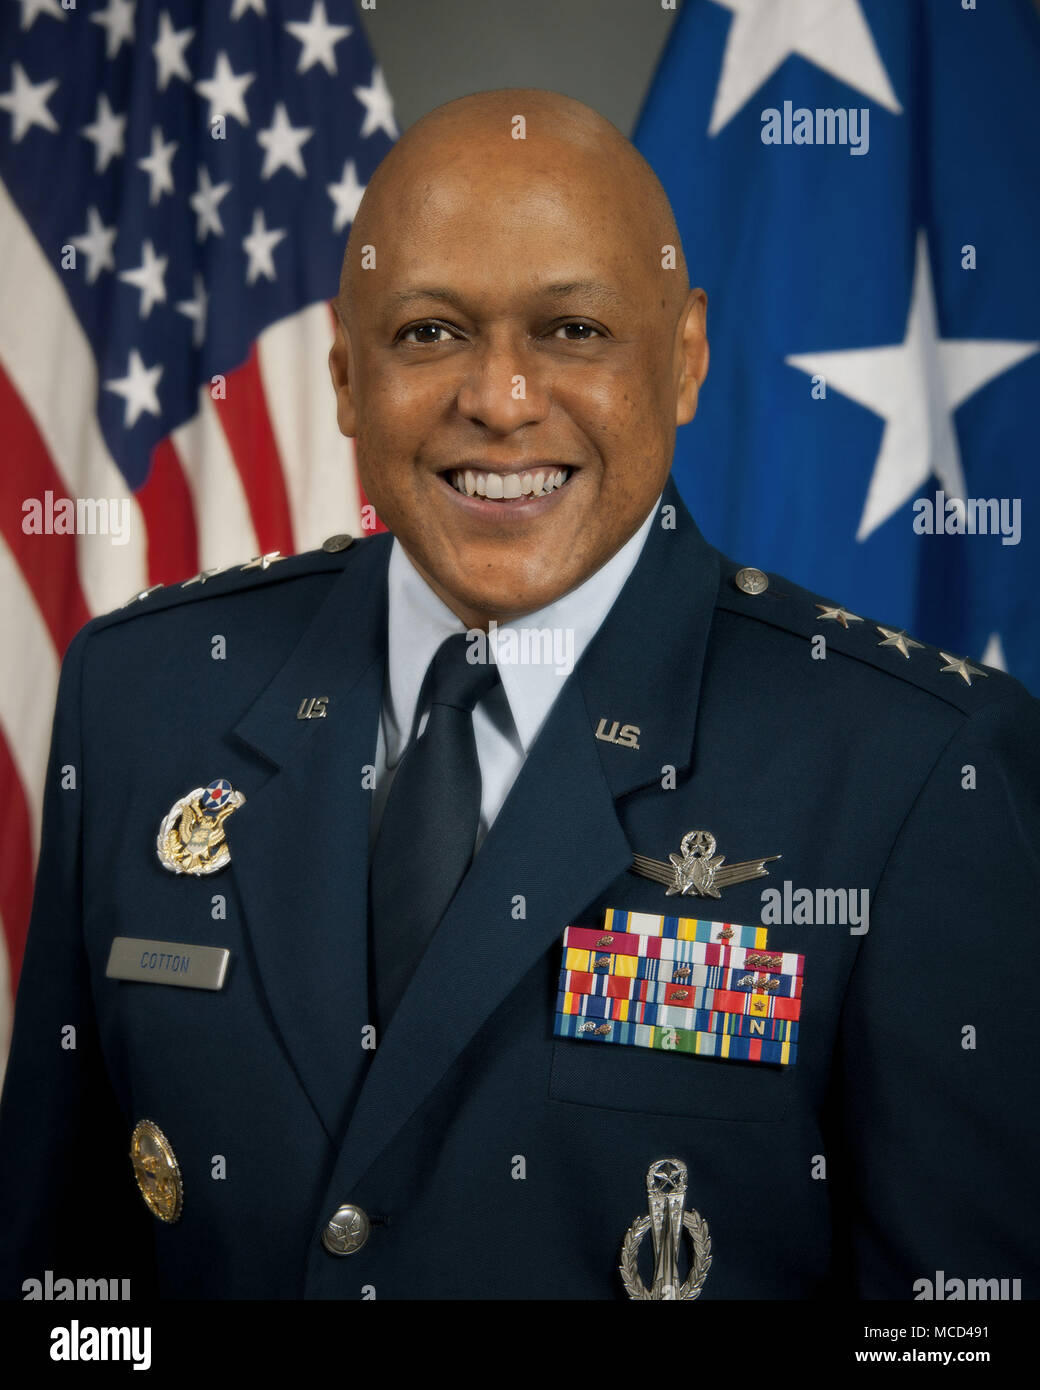 Maxwell AFB, Ala. - Official portrait of Lieutenant General Anthony Cotton, incoming Commander and President of Air University. (US Air Force photo by Melanie Rodgers Cox/Released) - Stock Image